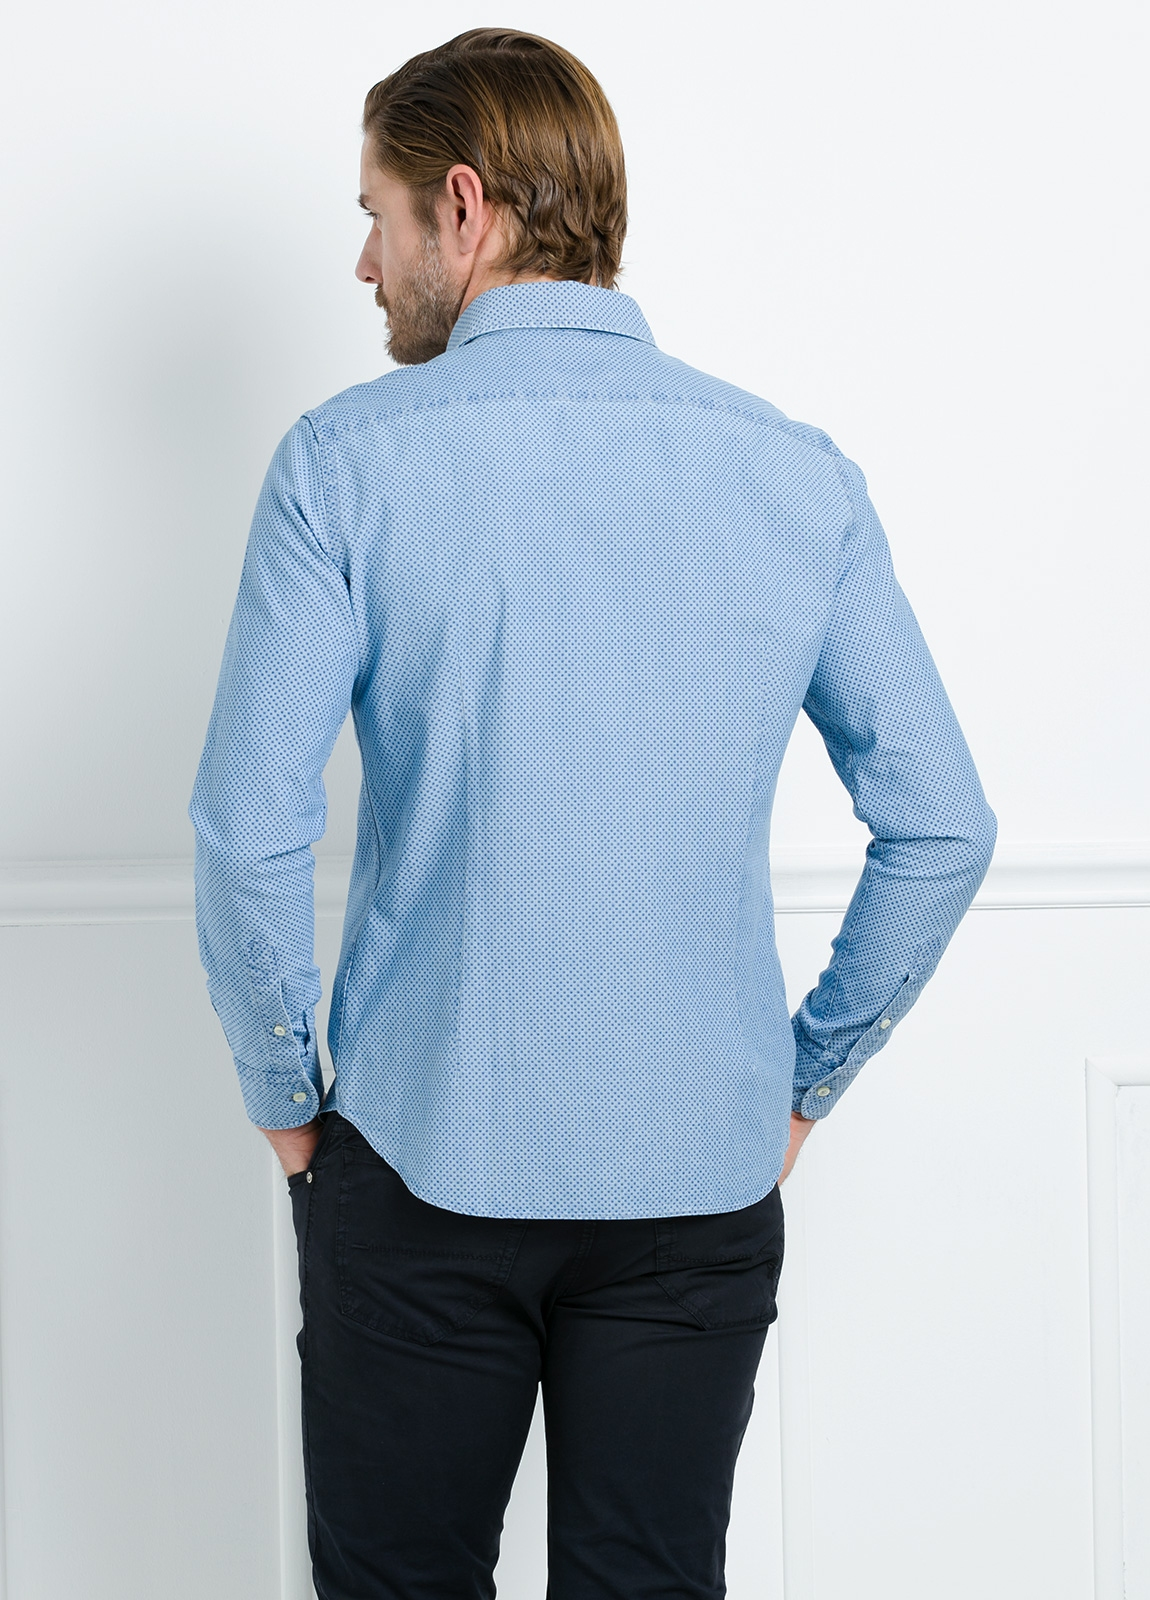 Camisa Leisure Wear SLIM FIT modelo PORTO estampado topito color azul. 100% Algodón. - Ítem3